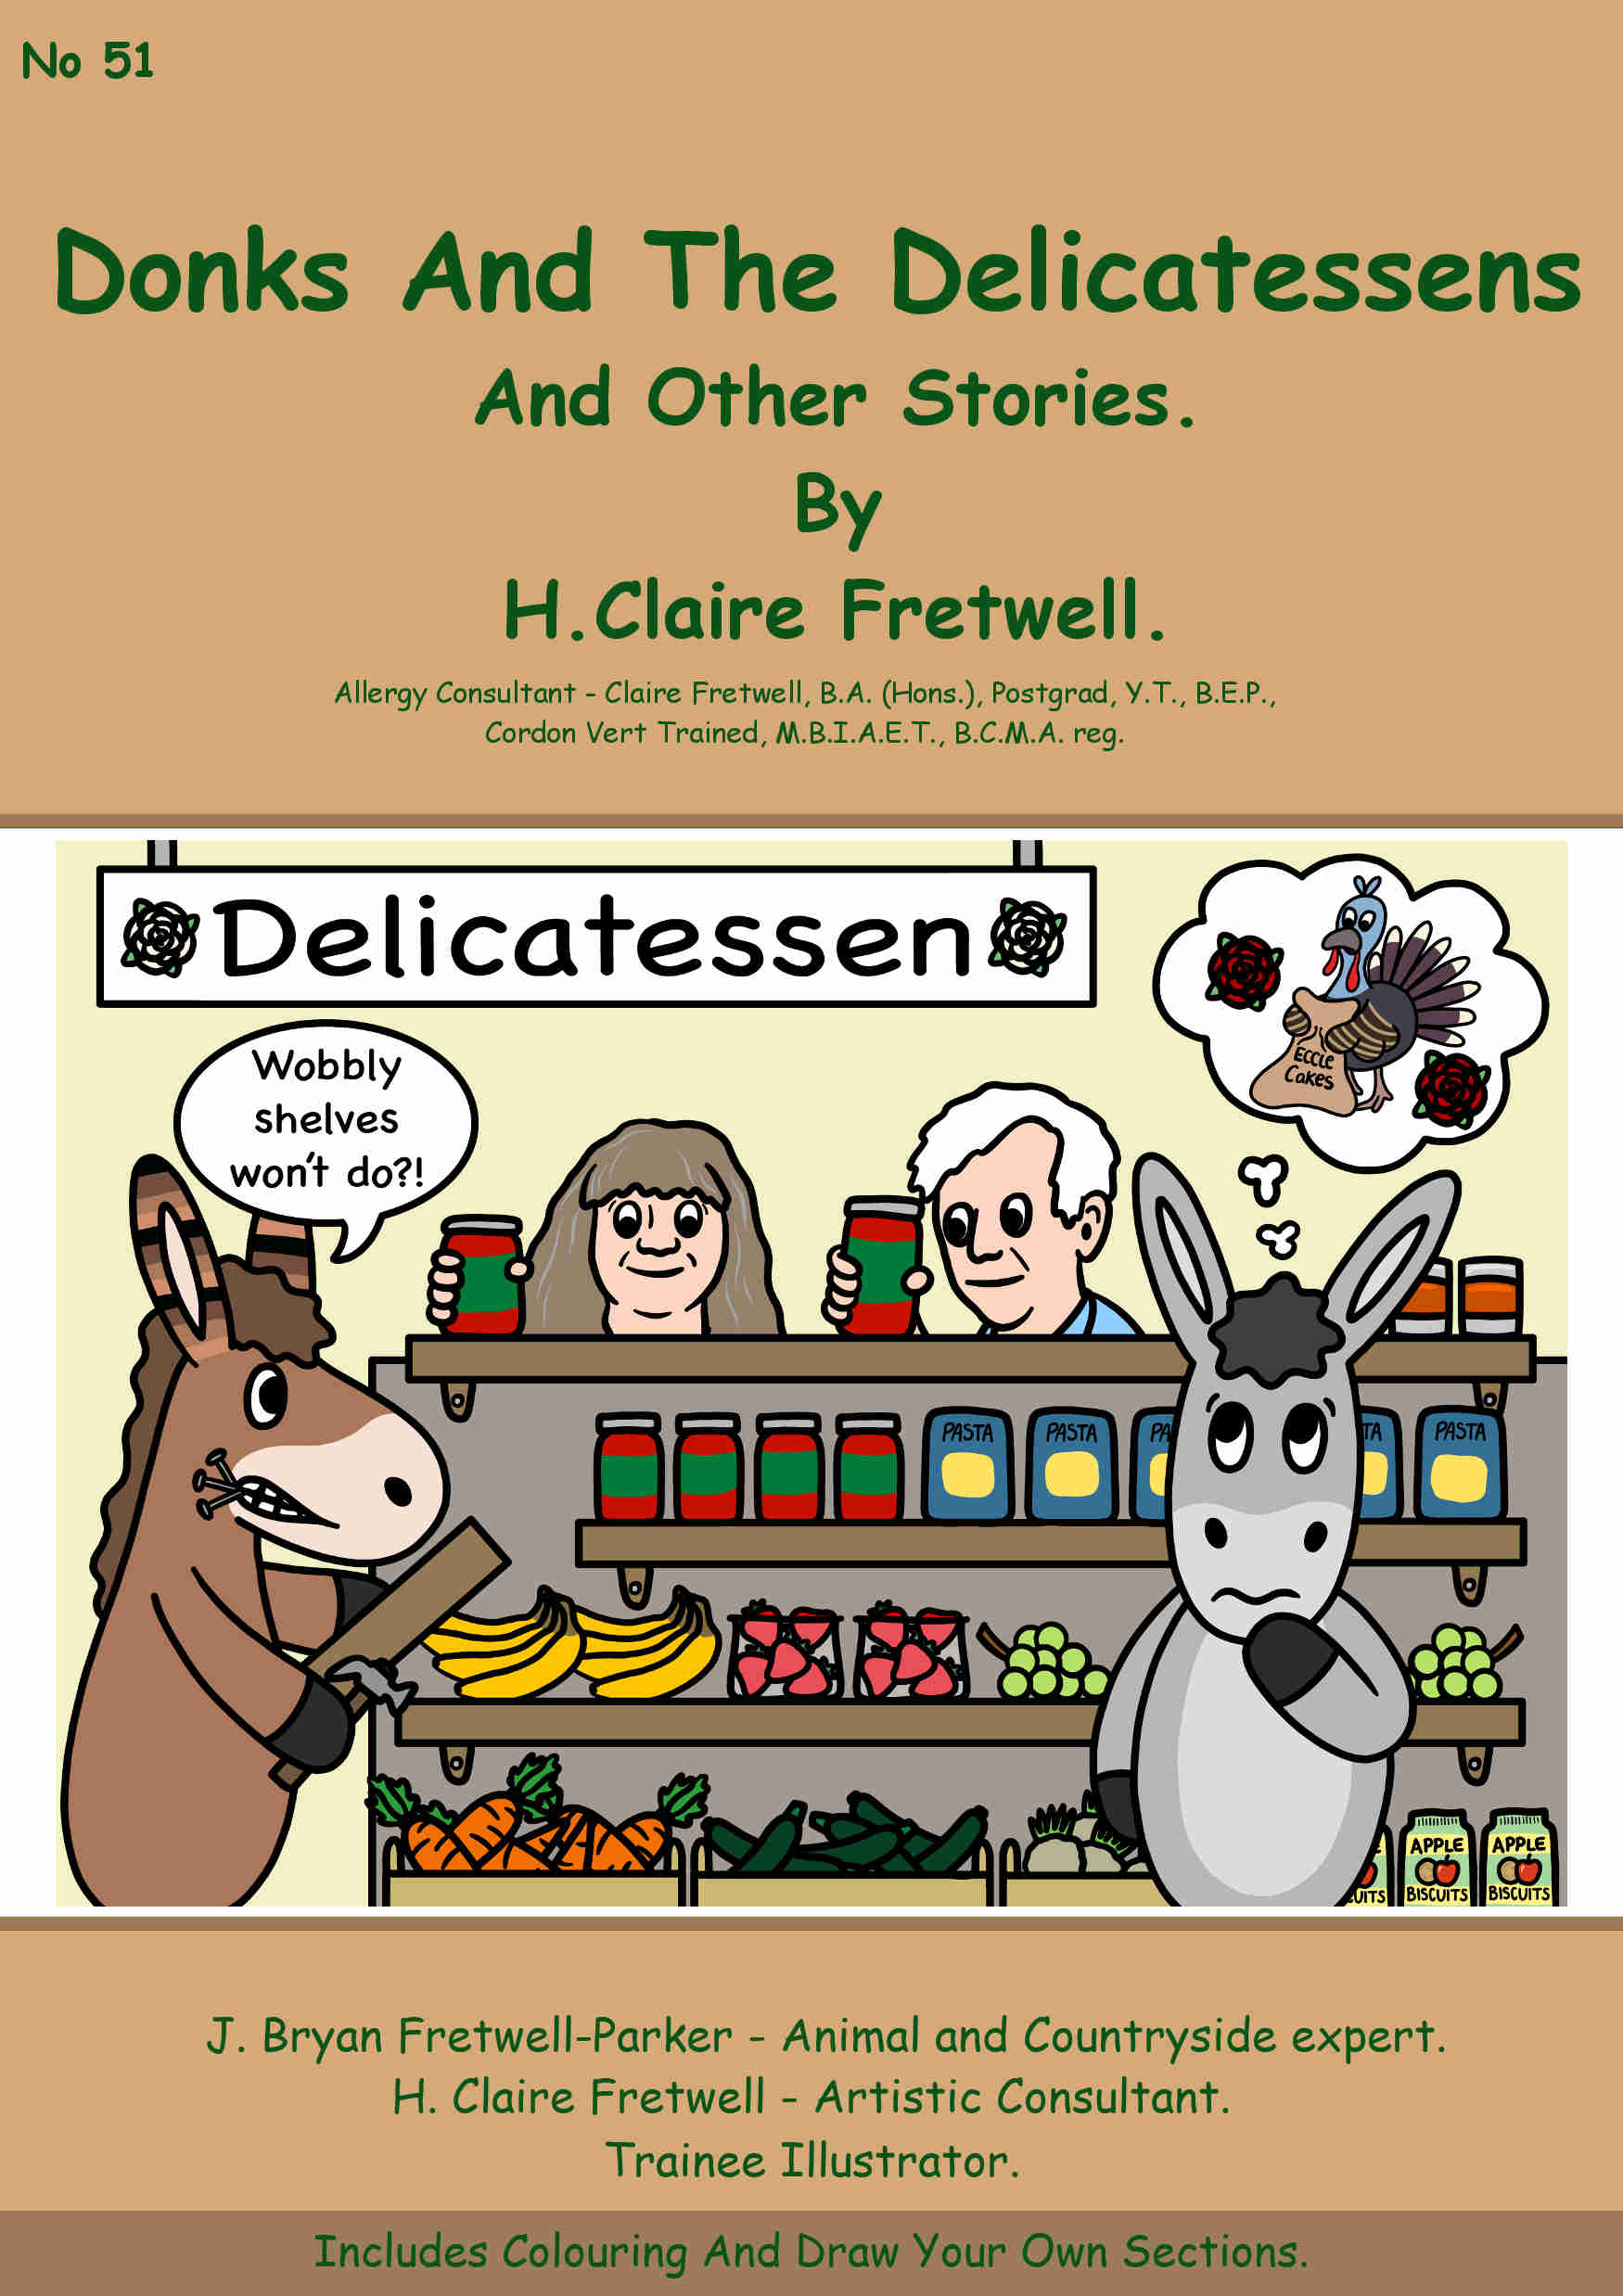 Donks And The Delicatessen. #51